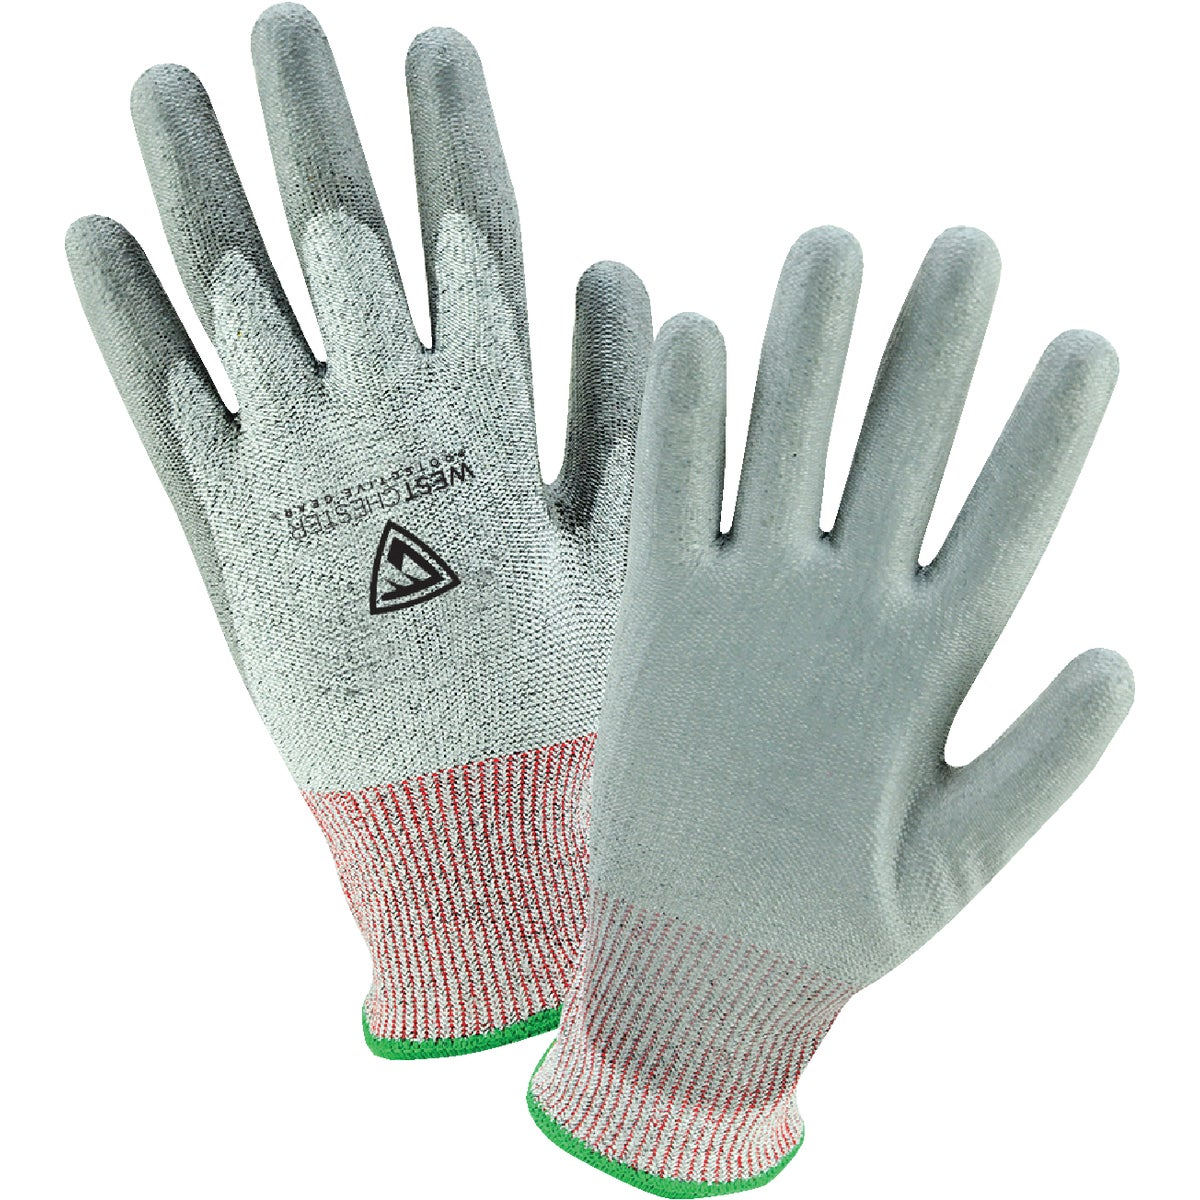 CUT 5 XL GLOVE - DPG805XL by Radians